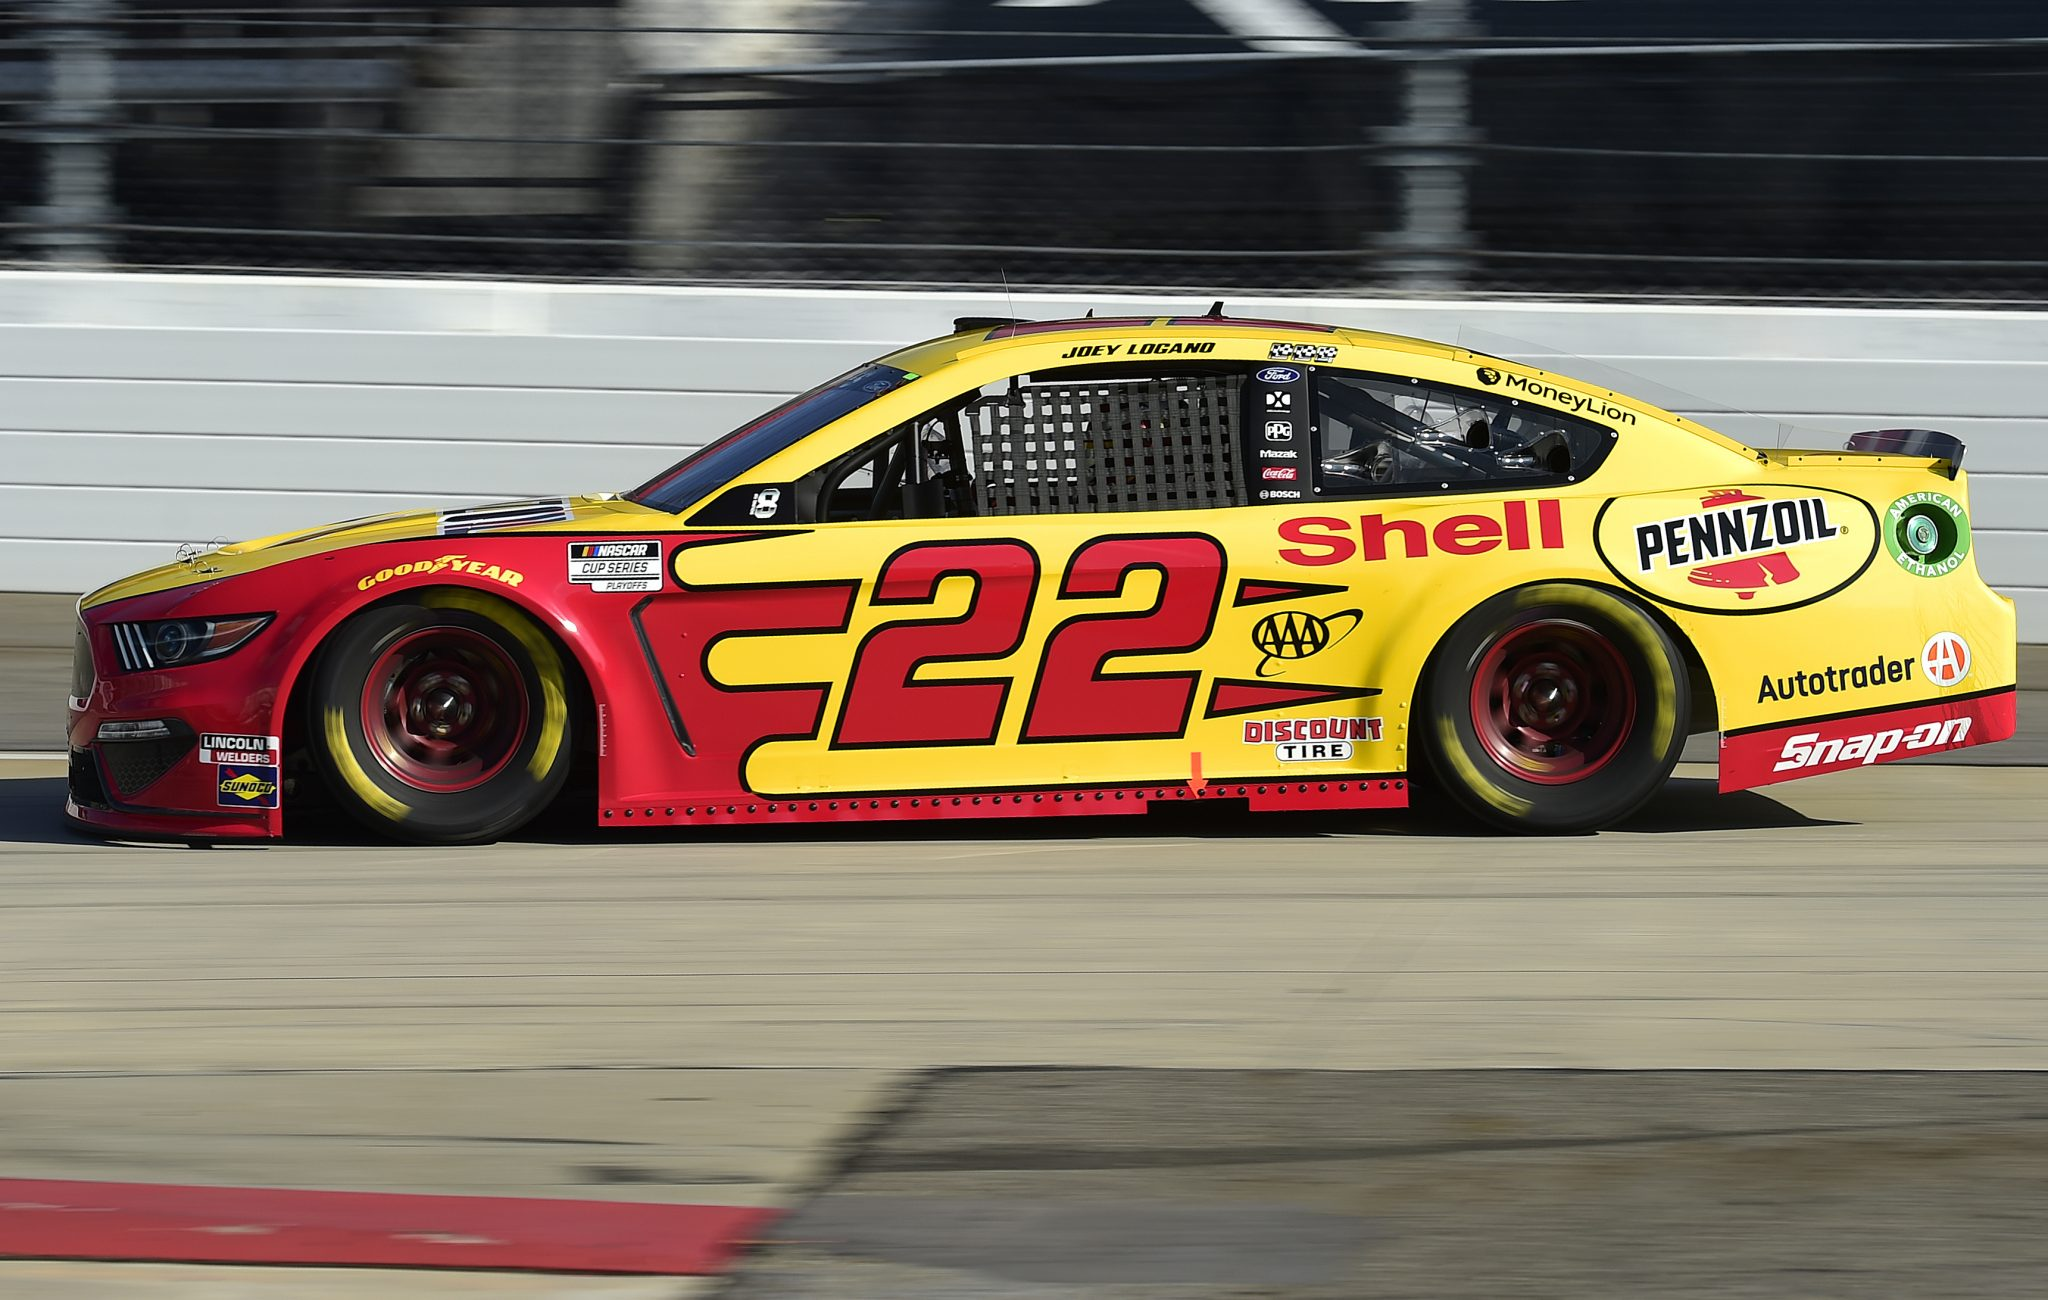 MARTINSVILLE, VIRGINIA - NOVEMBER 01: Joey Logano, driver of the #22 Shell Pennzoil Ford, drives during the NASCAR Cup Series Xfinity 500 at Martinsville Speedway on November 01, 2020 in Martinsville, Virginia. (Photo by Jared C. Tilton/Getty Images) | Getty Images